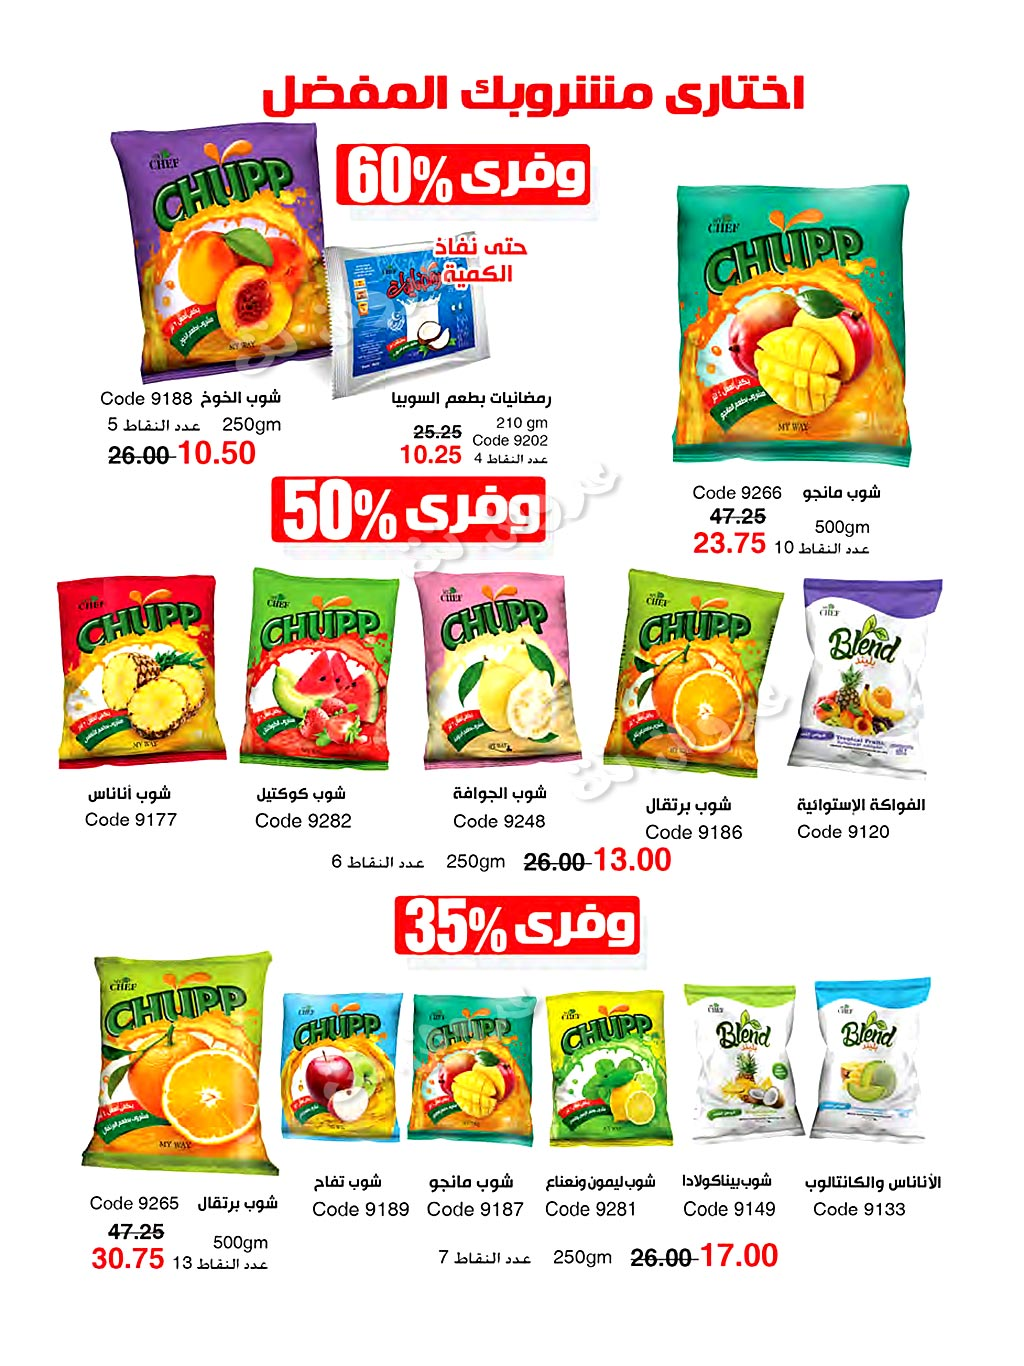 my-way offers from 1sep to 31sep 2019 page number 103 عروض ماي واي من 1 سبتمبر حتى 31 سبتمبر 2019 صفحة رقم 103